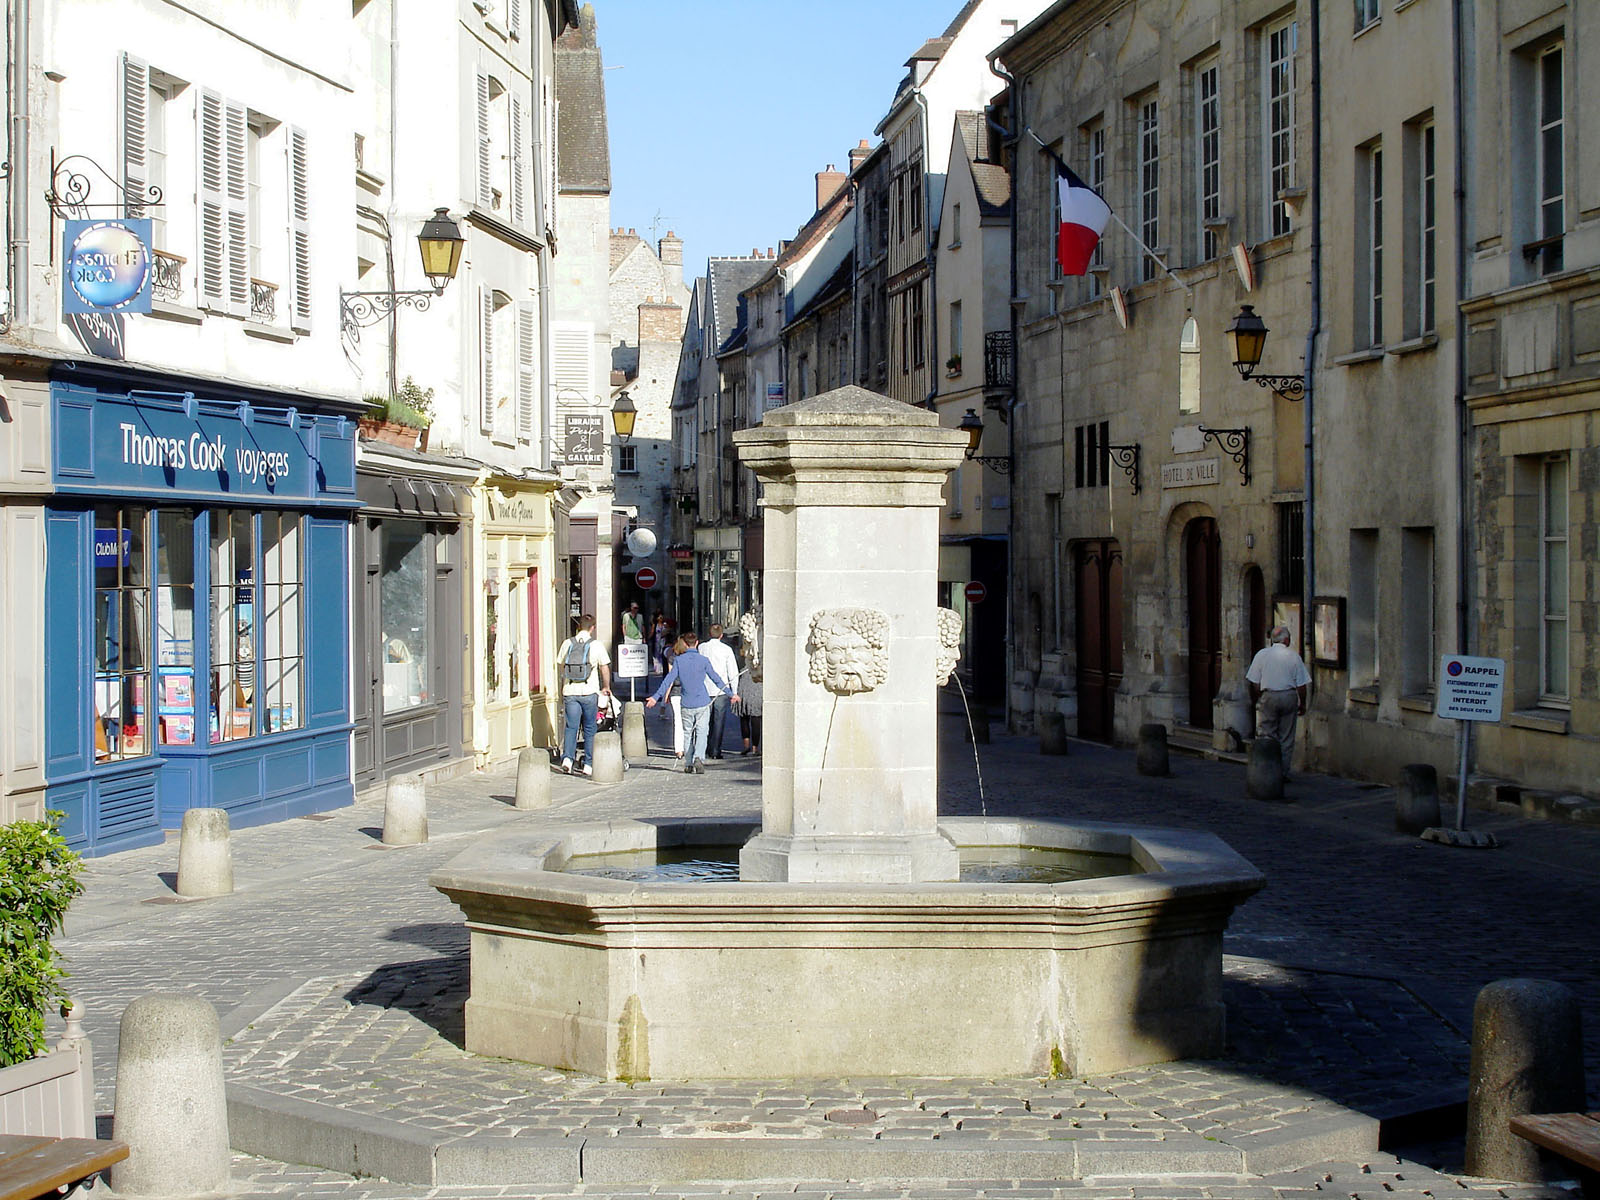 467/import-from-v1/images/region/Senlis-Place-Henri-IV.jpg